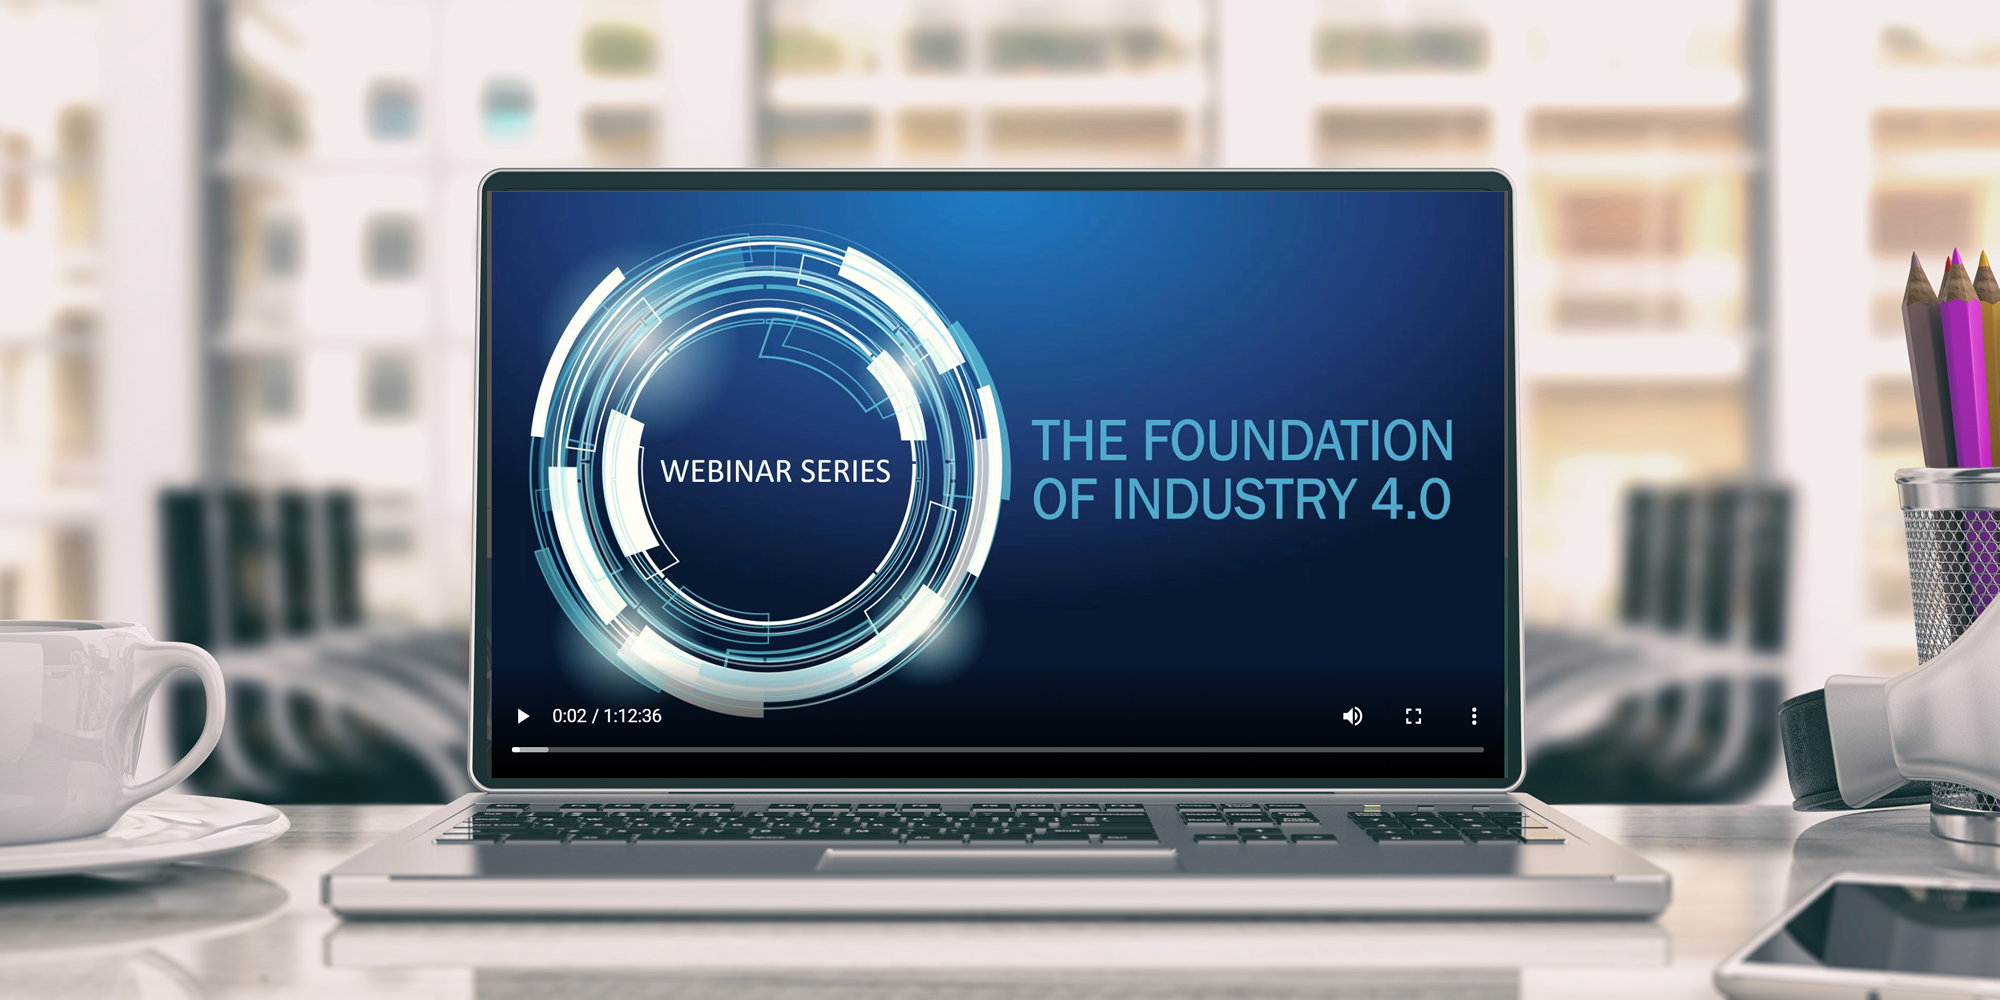 The Foundation of Industry 4.0 Webinar Series